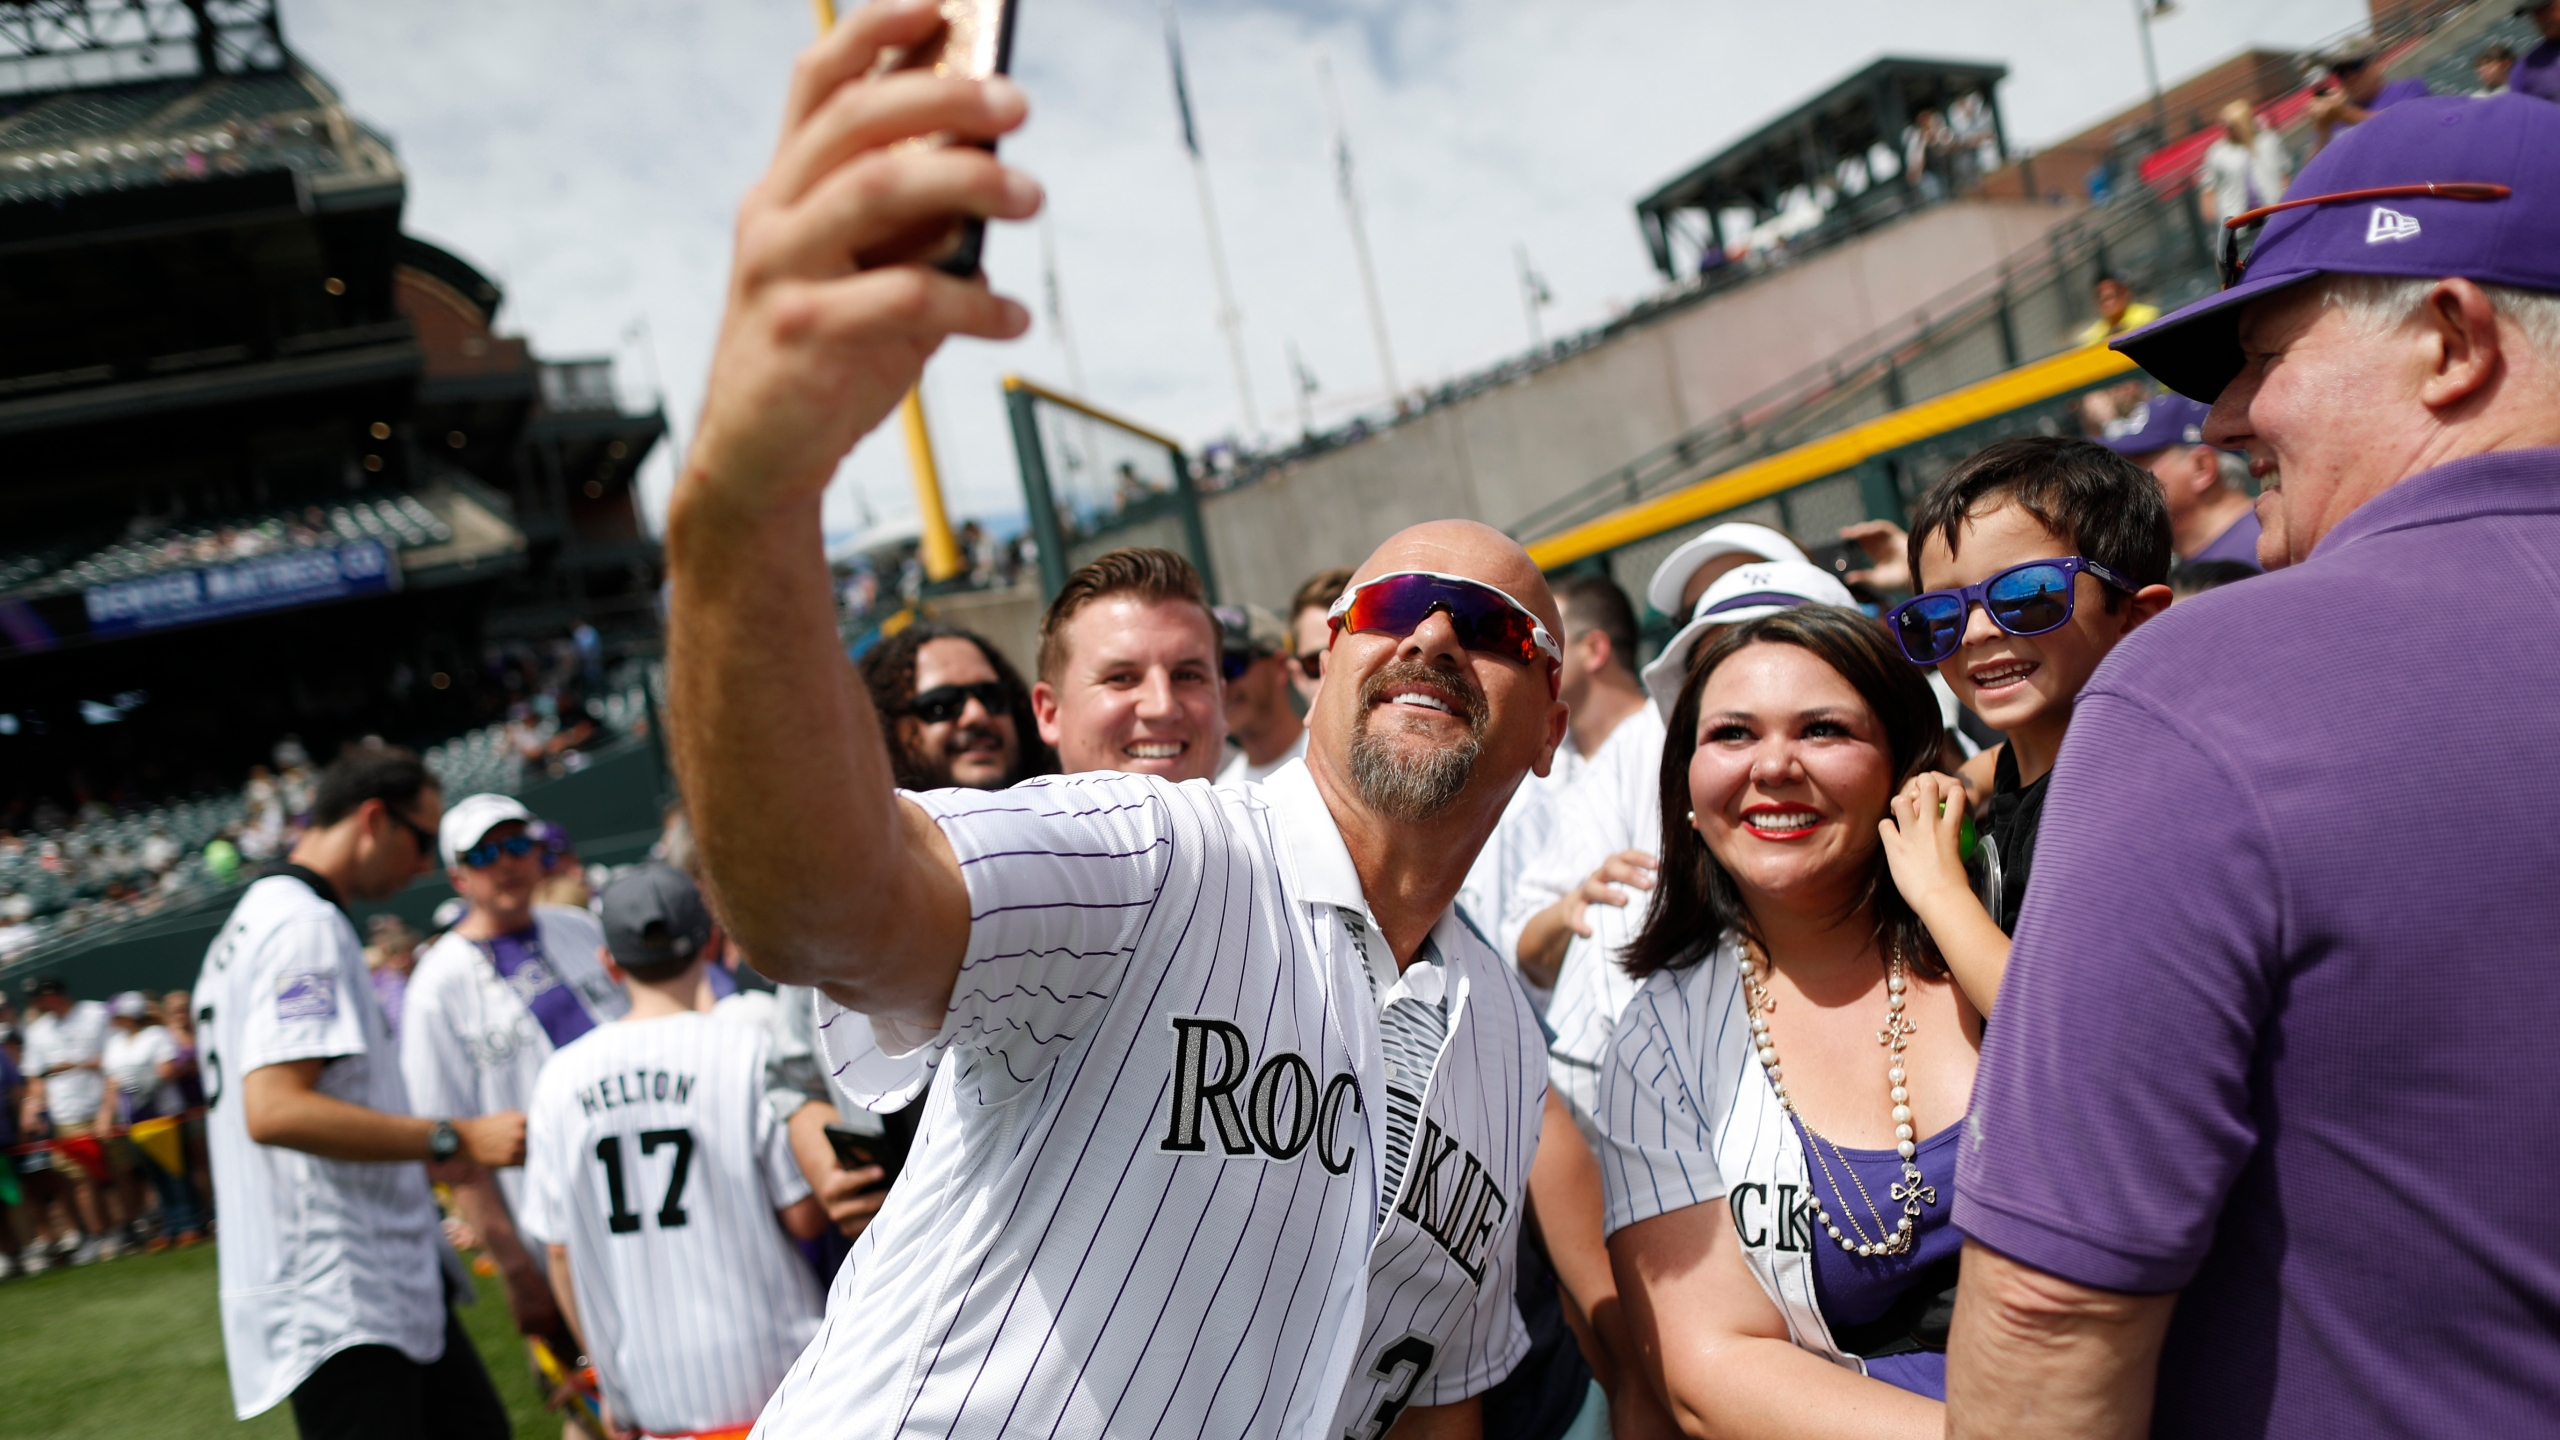 Retired Colorado Rockies outfielder Larry Walker during picture day for the Rockies before a baseball game against the Miami Marlins Saturday, June 23, 2018, in Denver. (AP Photo/David Zalubowski)